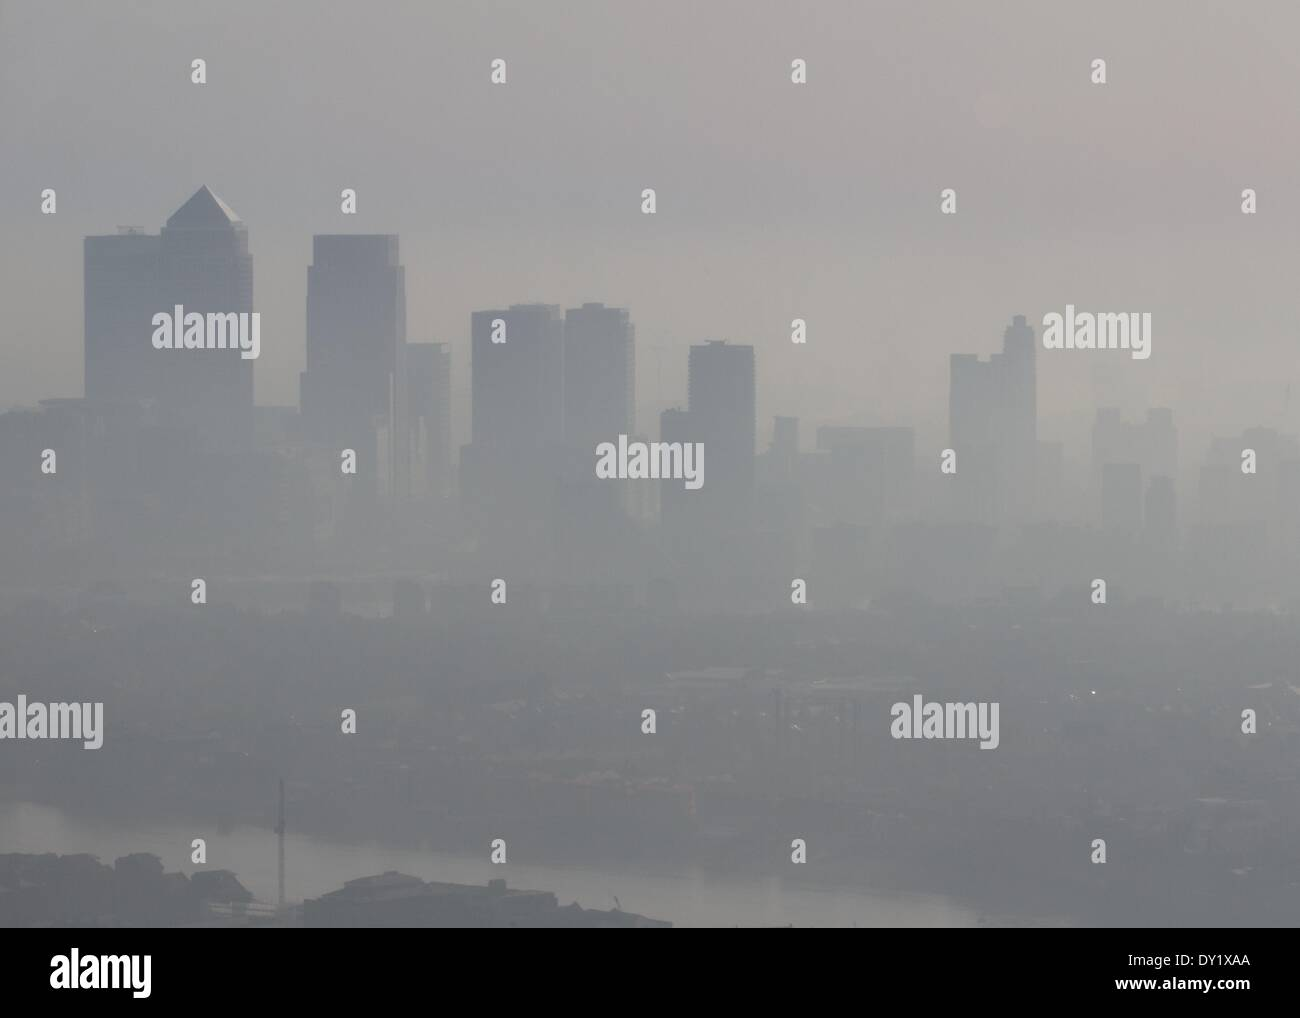 Record pollution levels over Canary Wharf in London, England Credit:  Paul McCabe/Alamy Live News - Stock Image